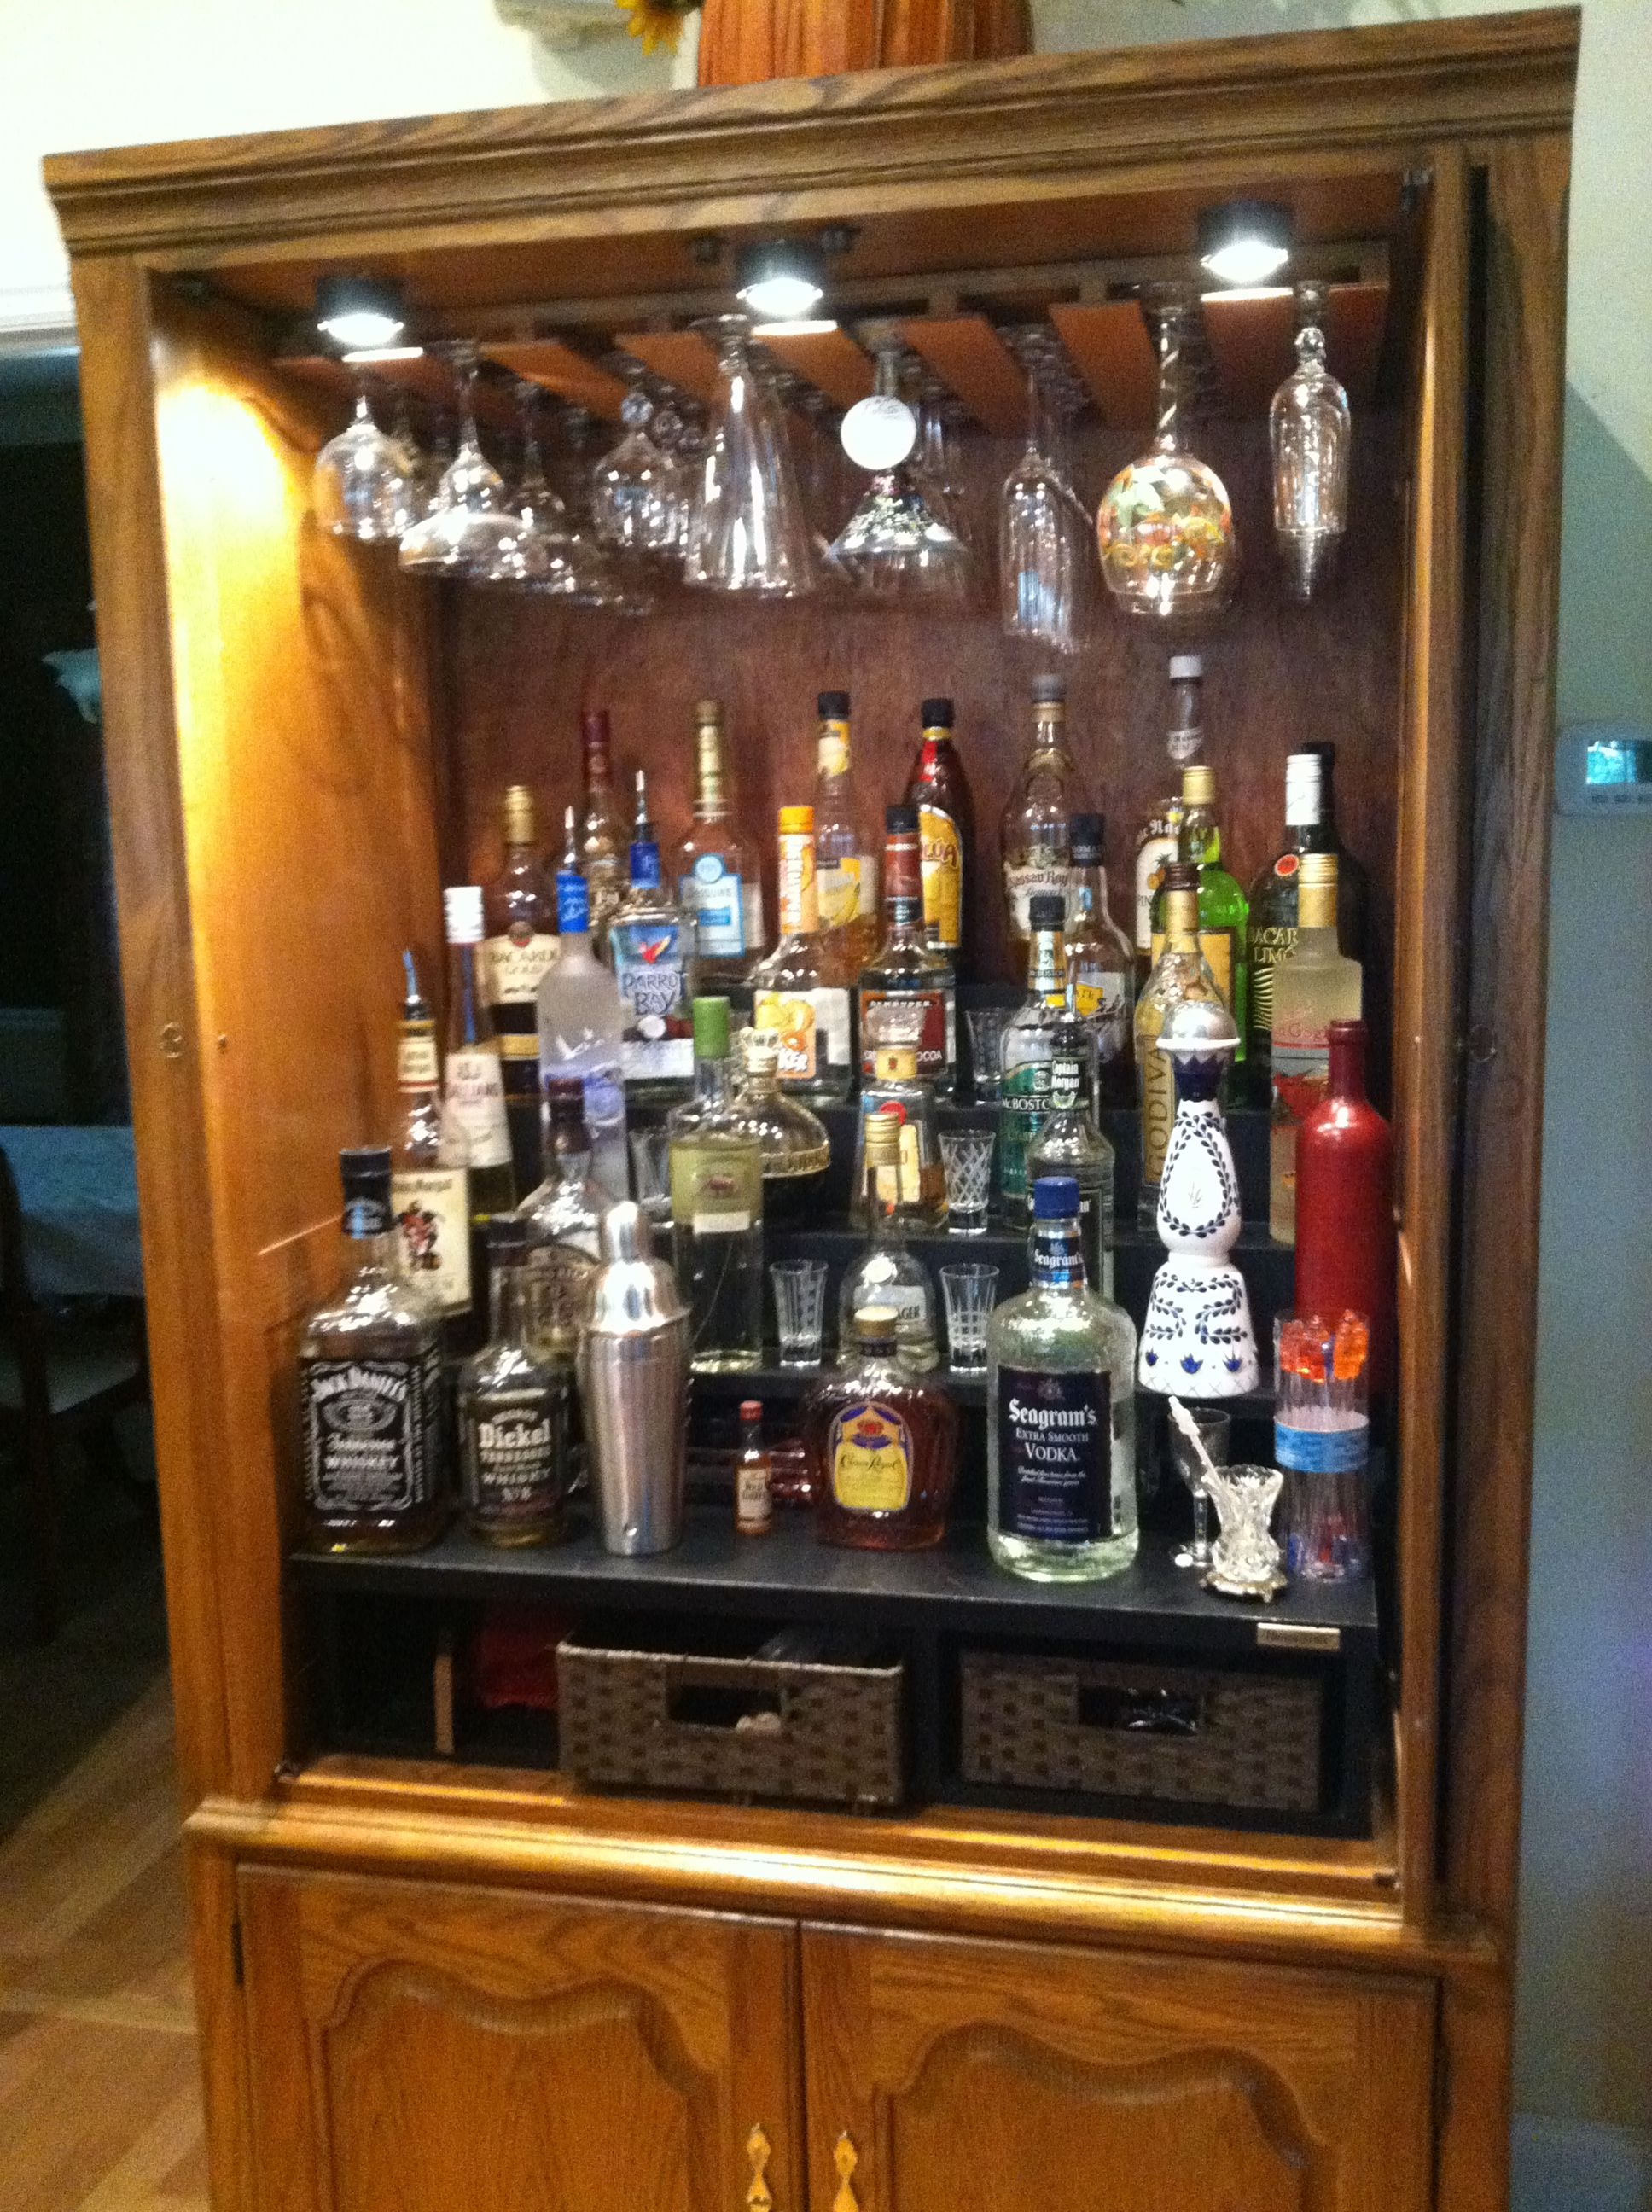 liquor barossa preparing cabinet enthusiast wine hutch bar zoom valley howard miller asp